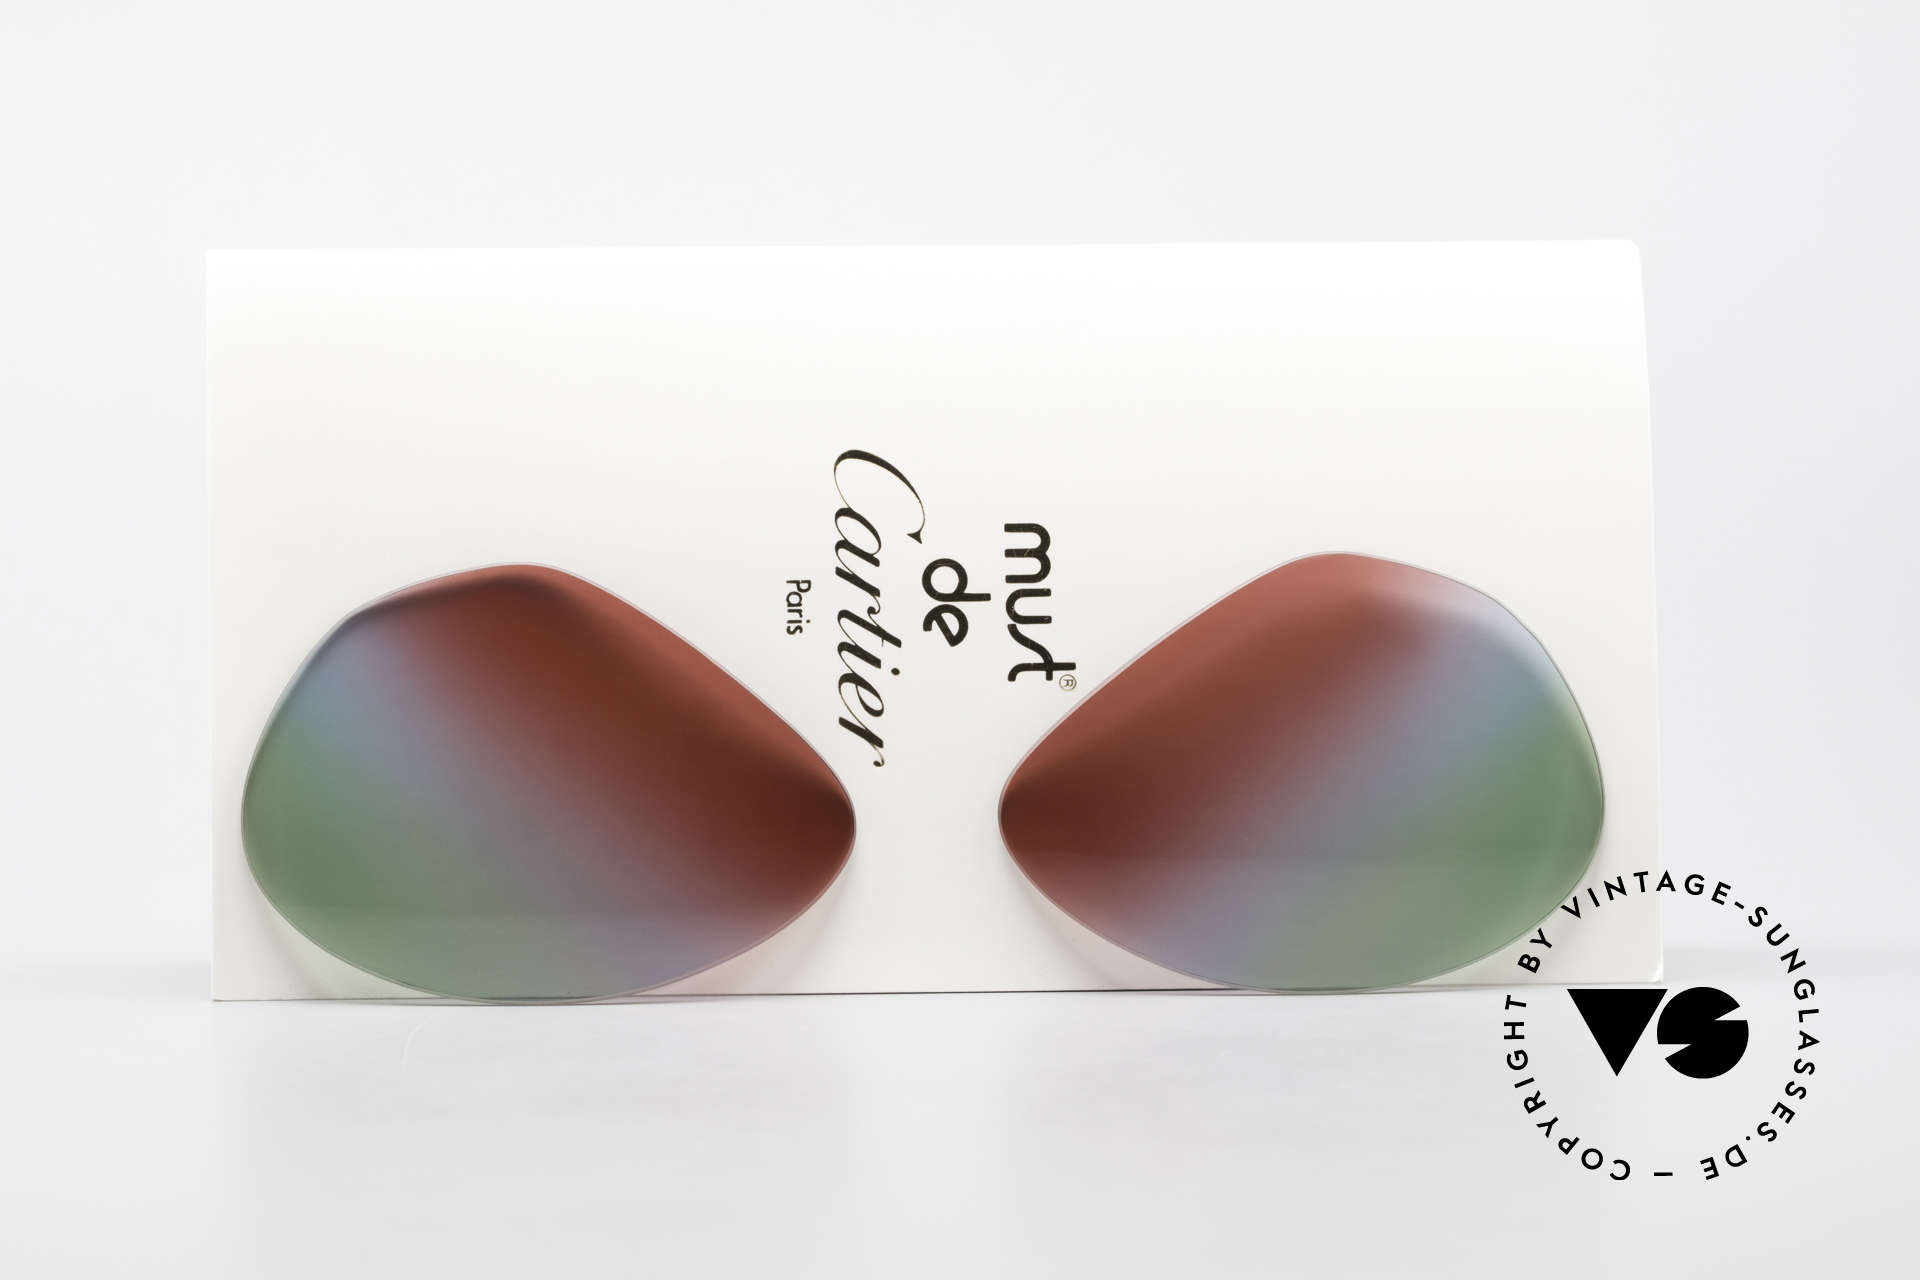 Cartier Vendome Lenses - L Bordeaux Polar Lights Tricolor, replacement lenses for the old Cartier Vendome 62mm!, Made for Men and Women